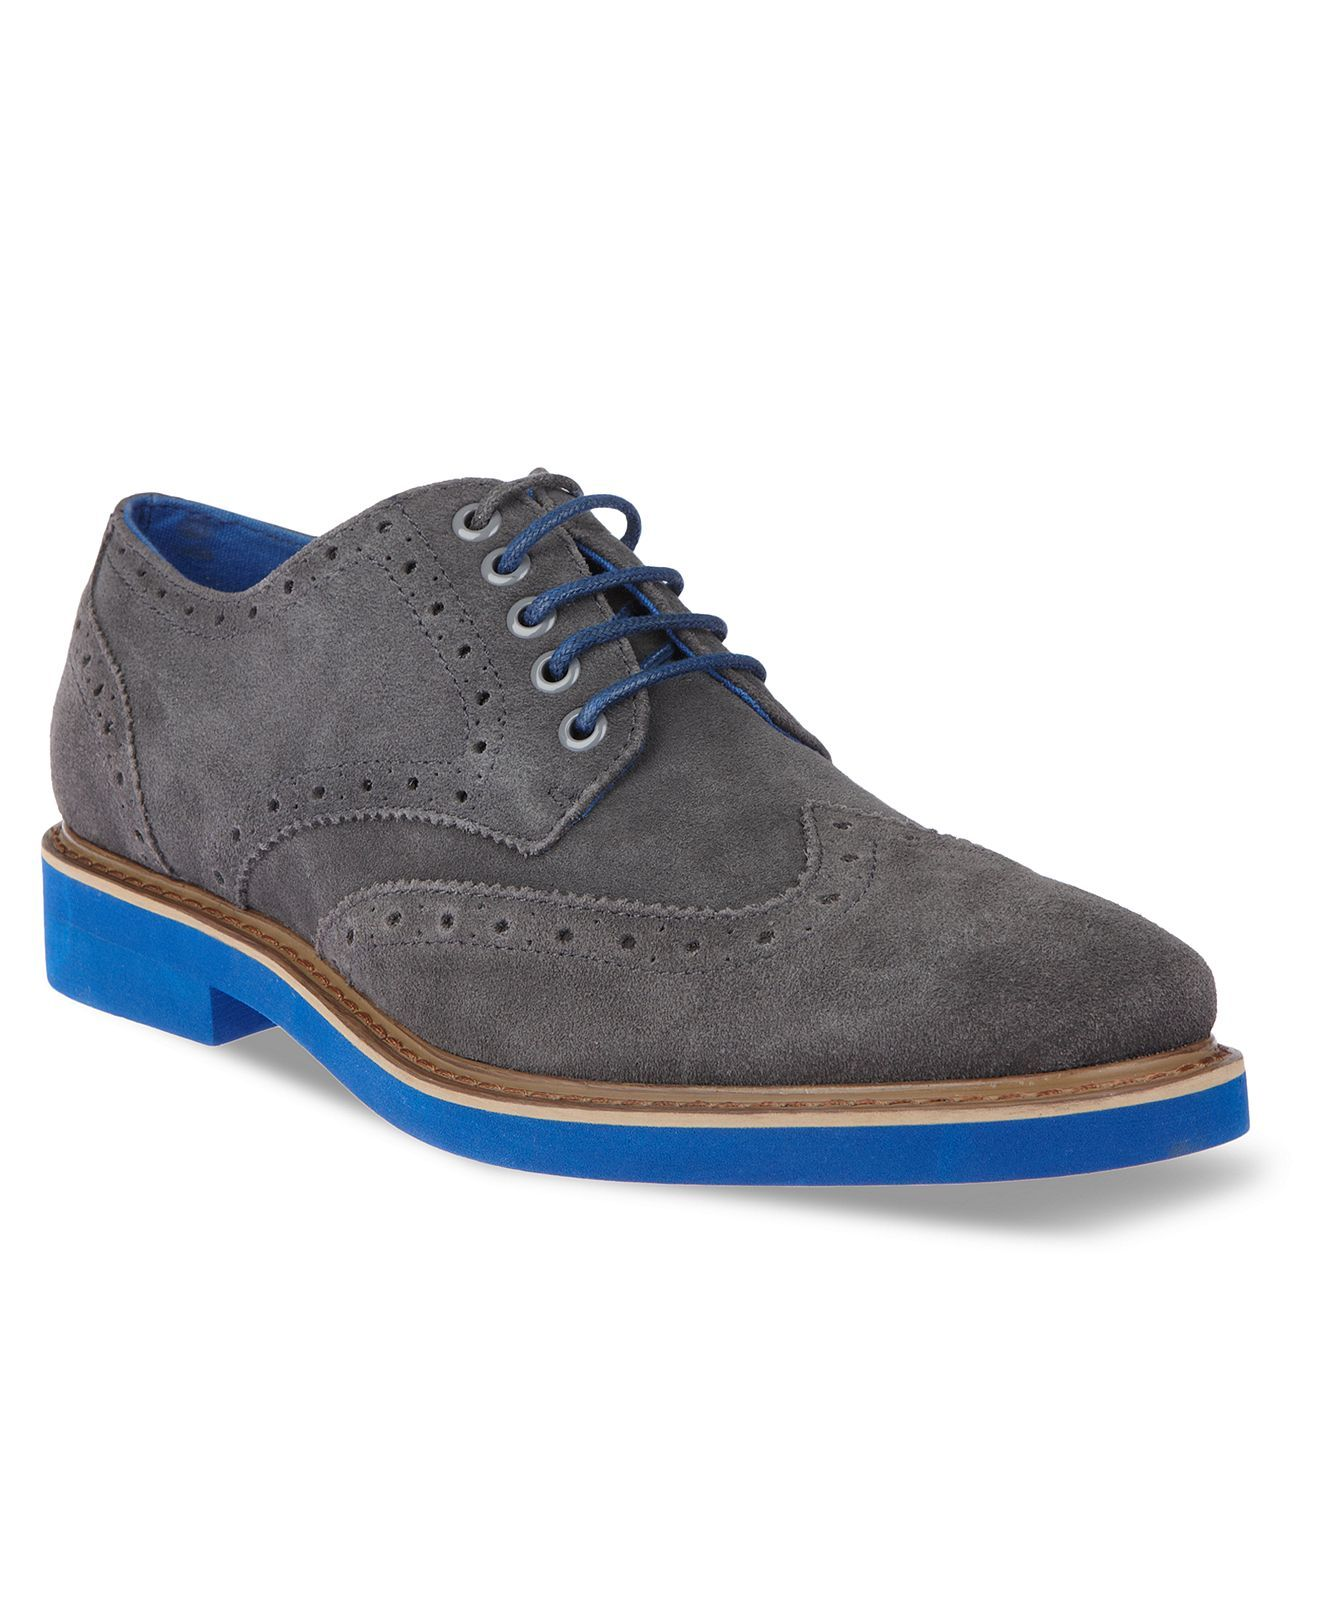 Steve Madden Shoes, Kikstart Oxford Wingtip Lace-Ups - Mens Shoes - Macy s ff87571537